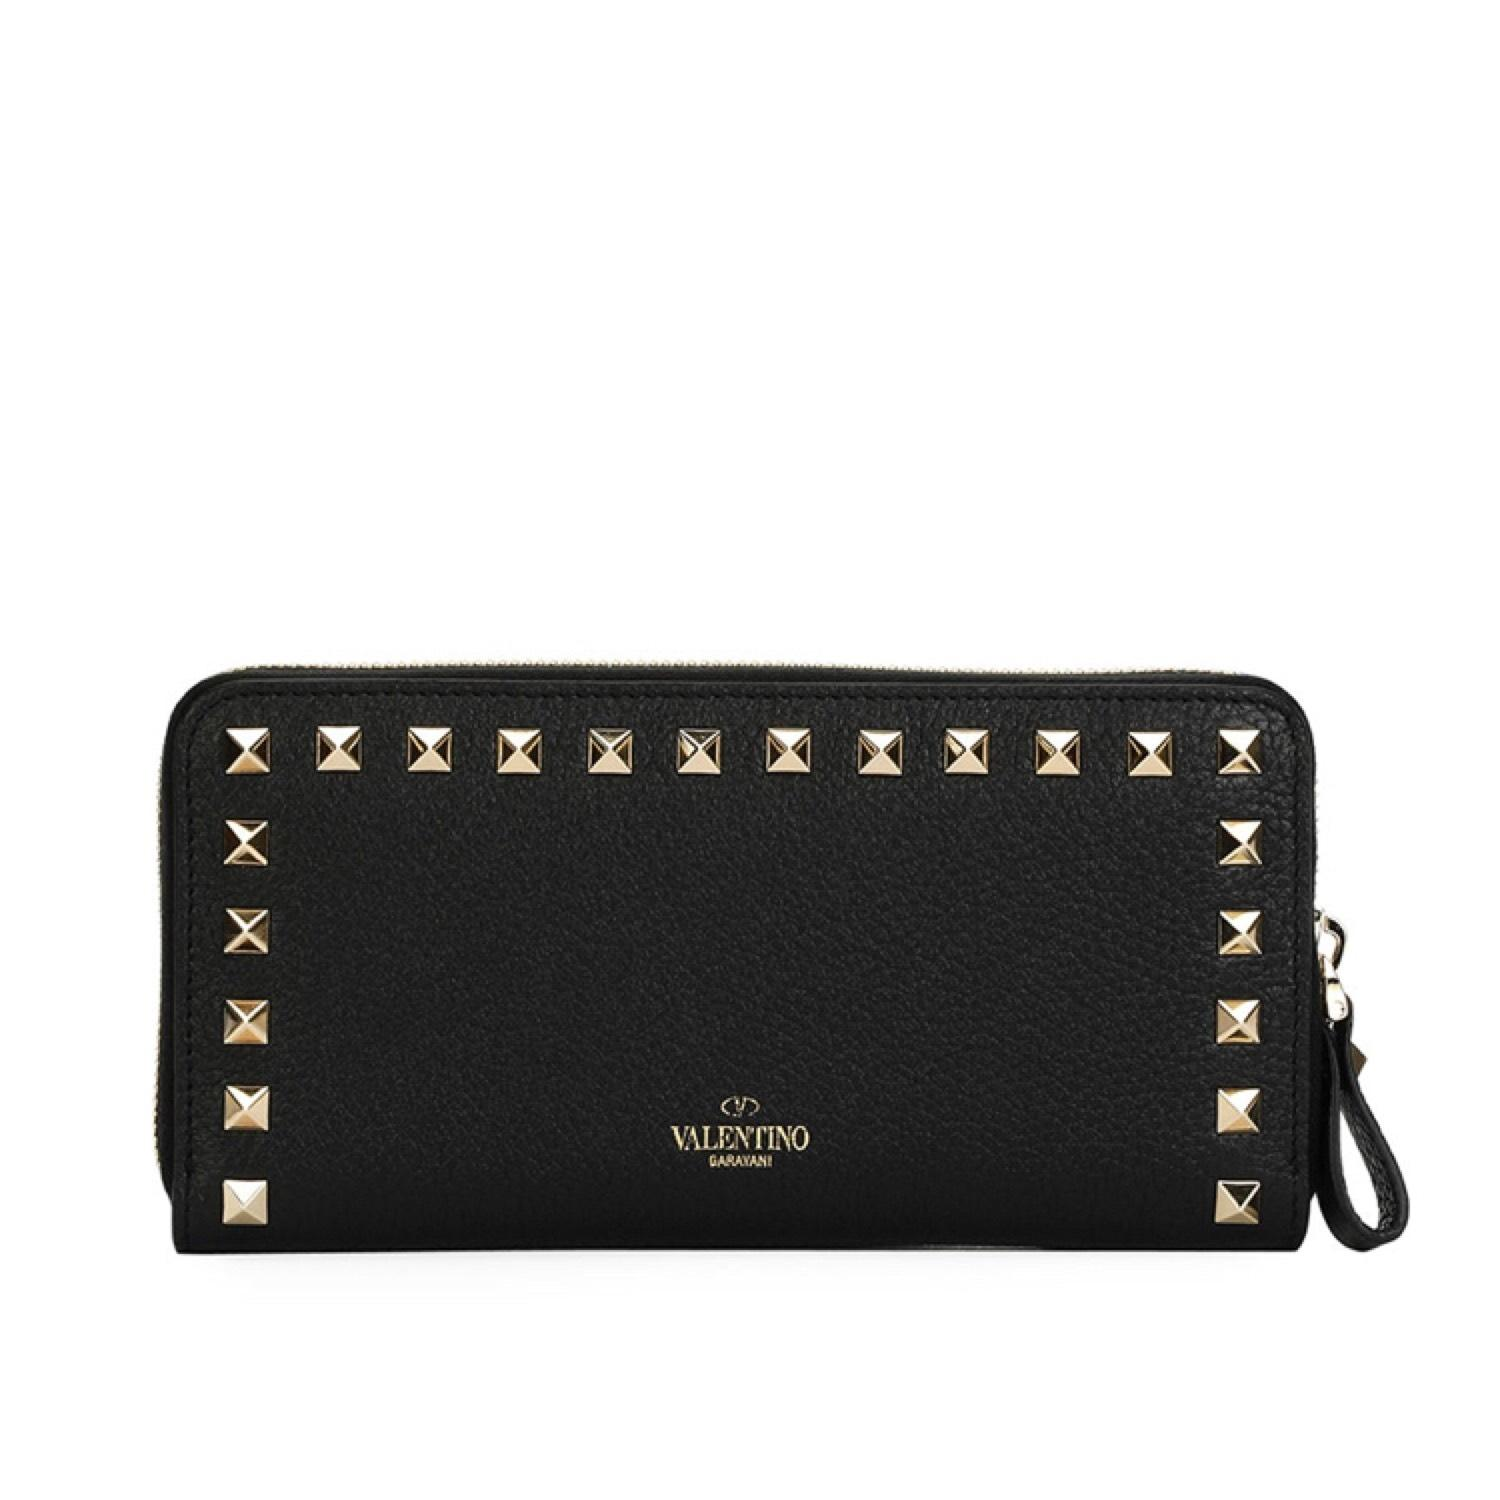 Shopping Online Zip-around wallet Valentino Buy Cheap In China Outlet Manchester Best Buy Wiki Cheap Price cf7Xu2I0